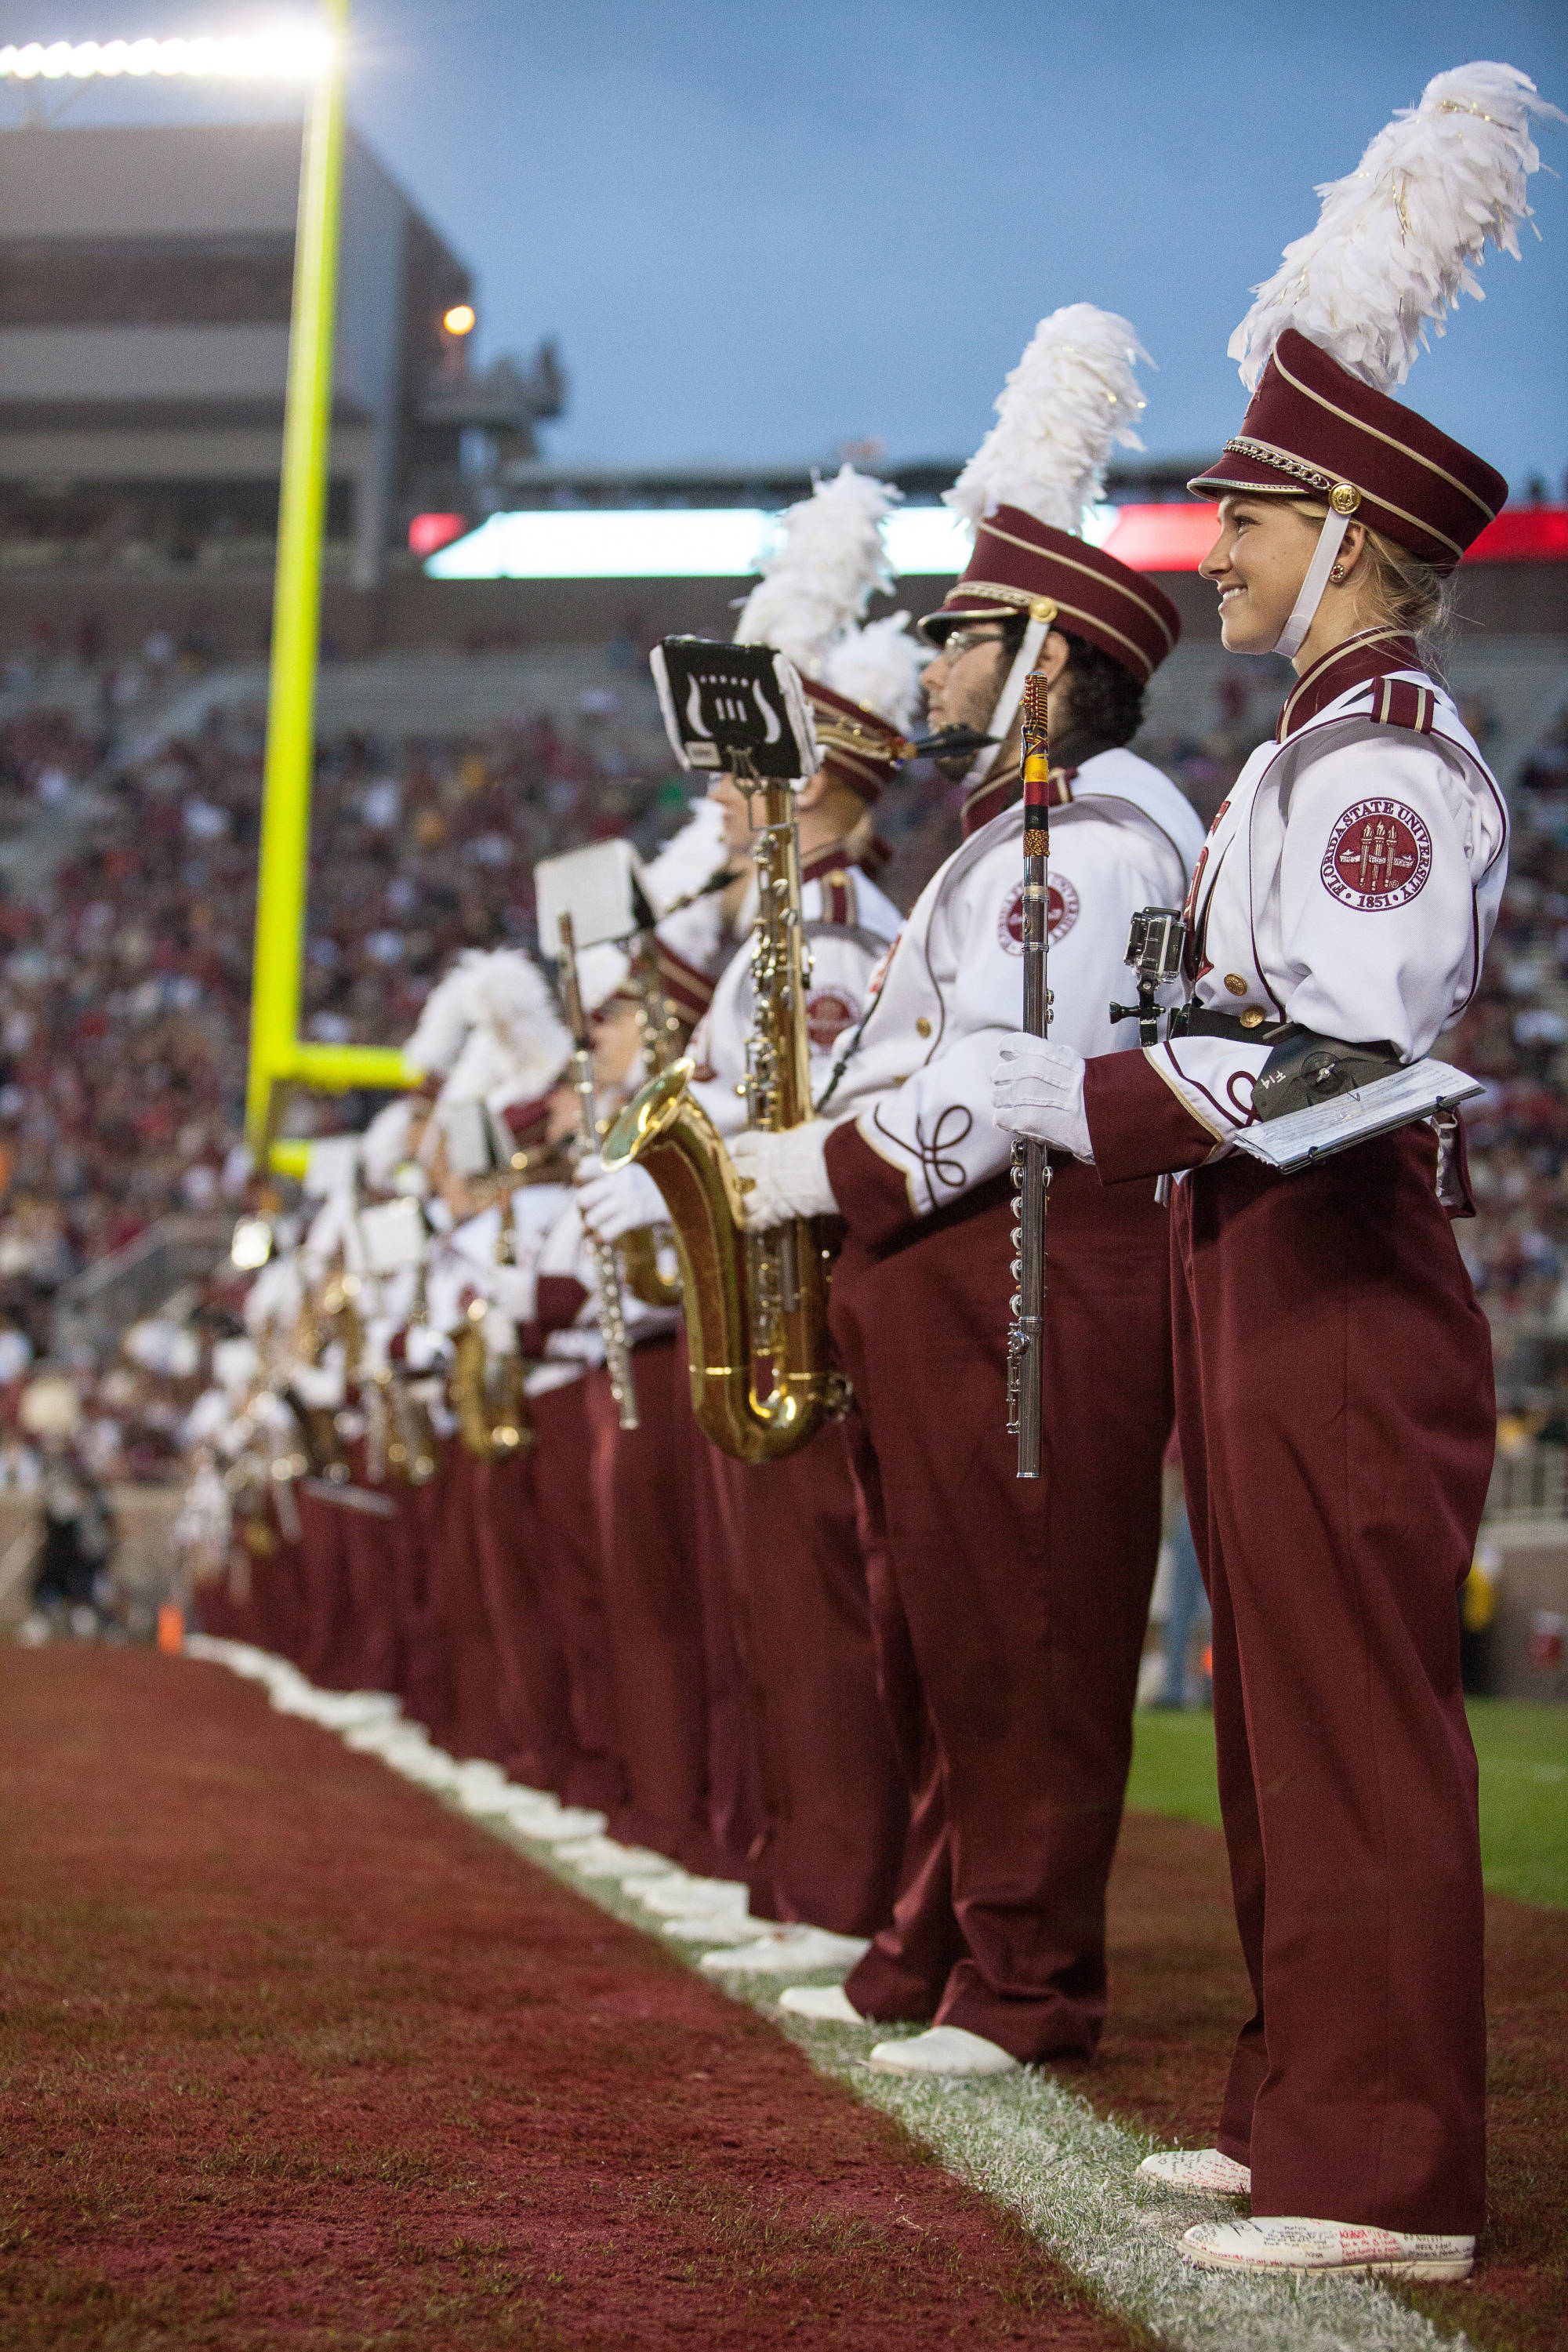 FSU's band performs during FSU Football's 80-14 victory over Idaho in Tallahassee, Fla on Saturday, November 23, 2013. Photos by Mike Schwarz.